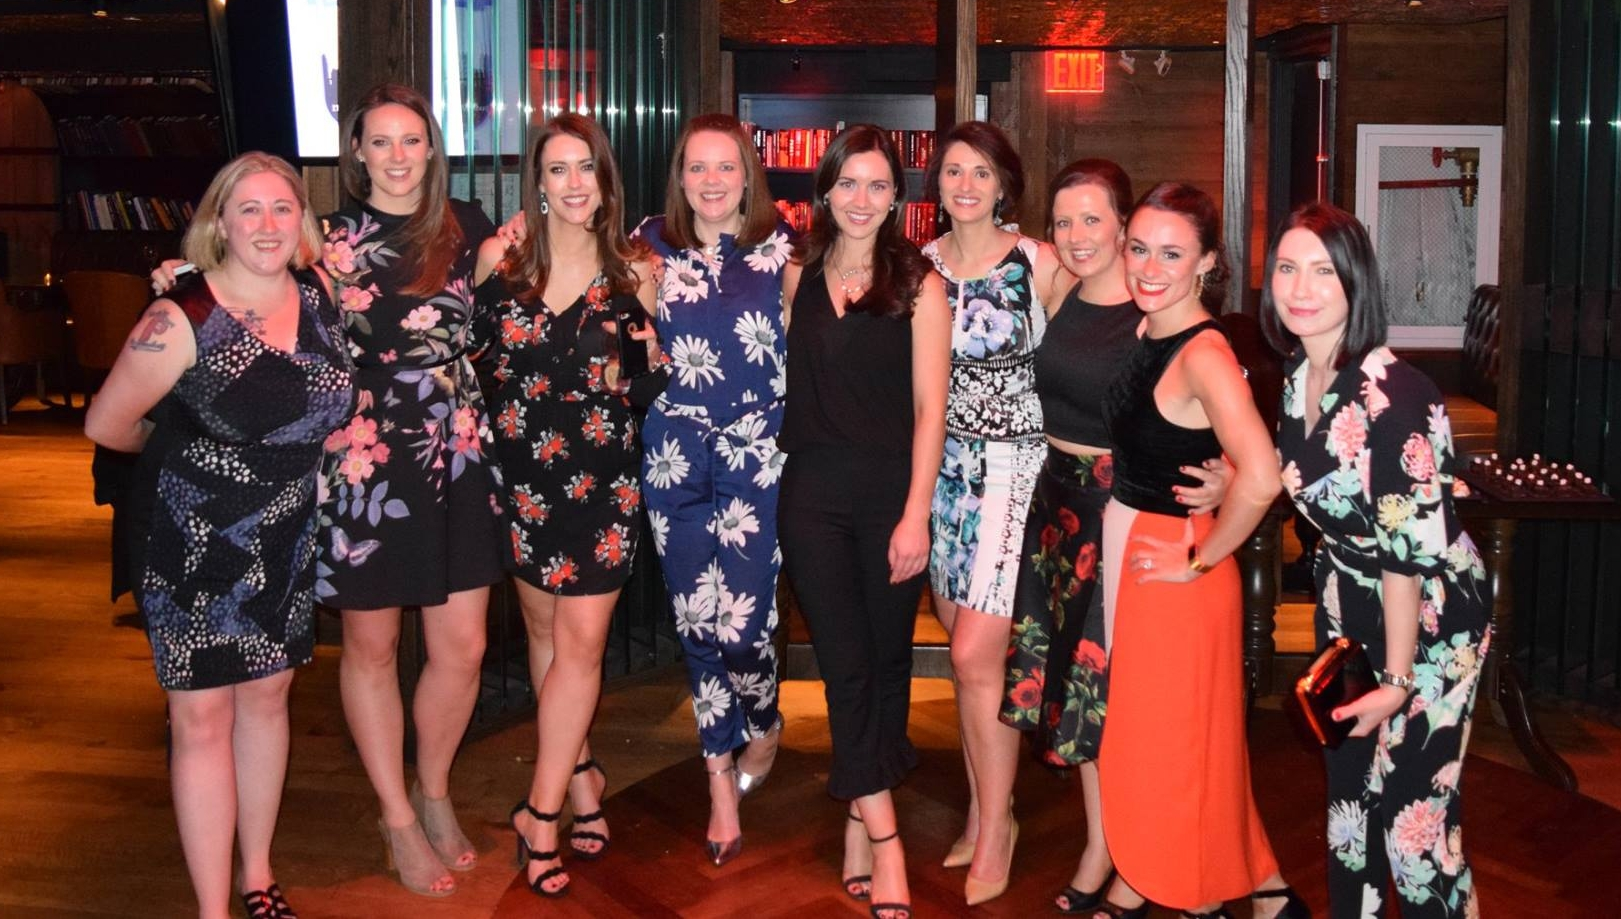 From left to right: C.J. Leonard, Aisling Daly, Niamh Tierney, Emily Mullan, Laura Brennan, Caroline McQuade, Orla Harty, Jane McCooey and Sarah Flavin